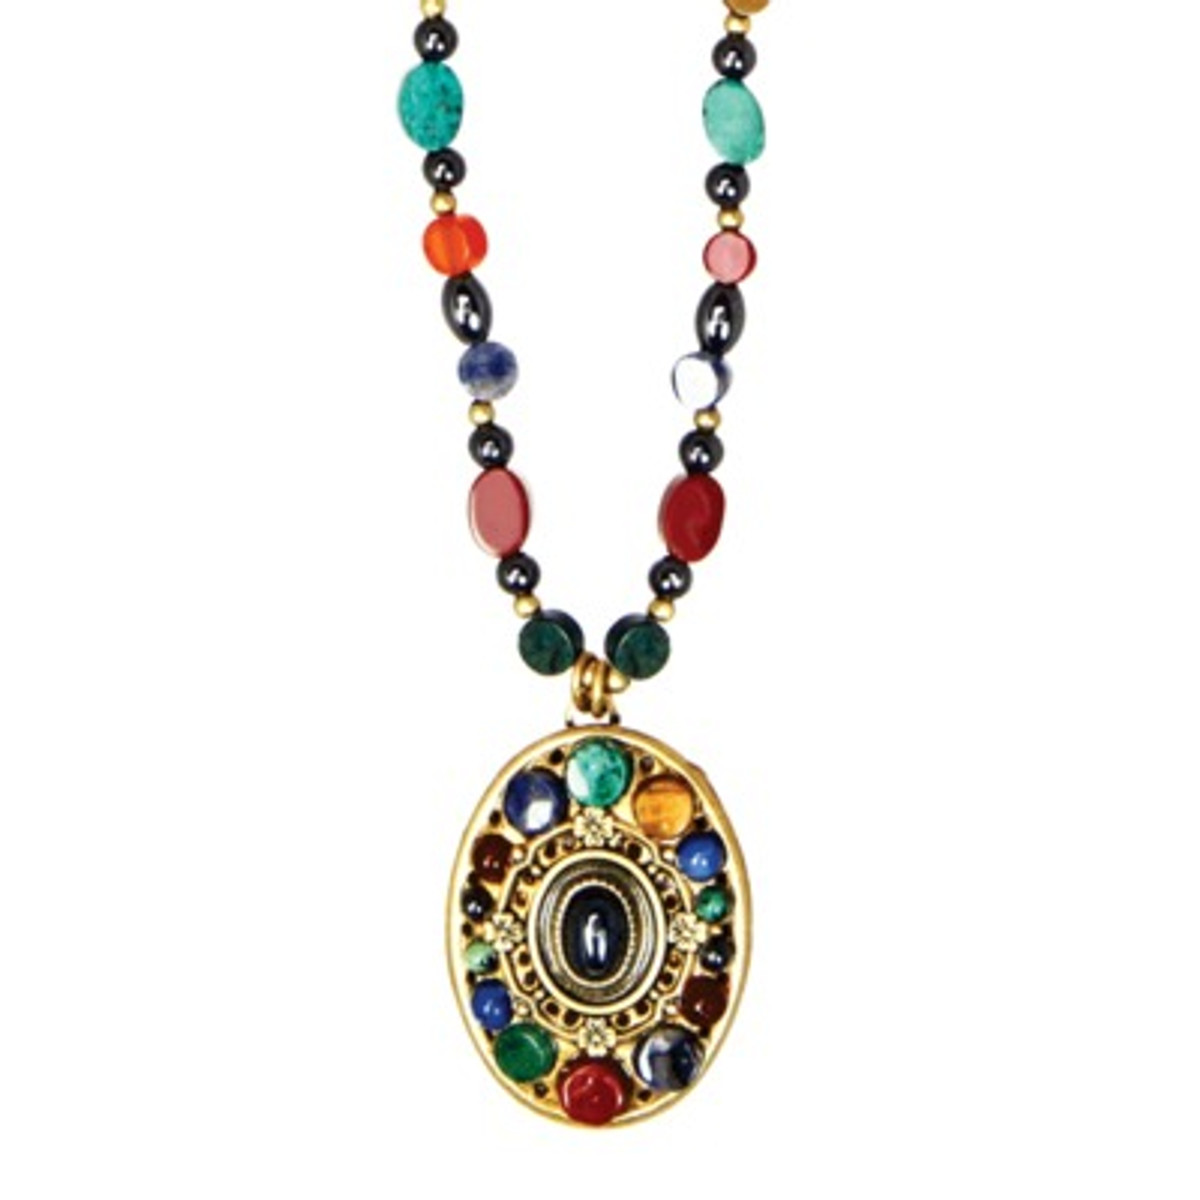 Michal Golan Necklace - Durango Oval Beaded Chain